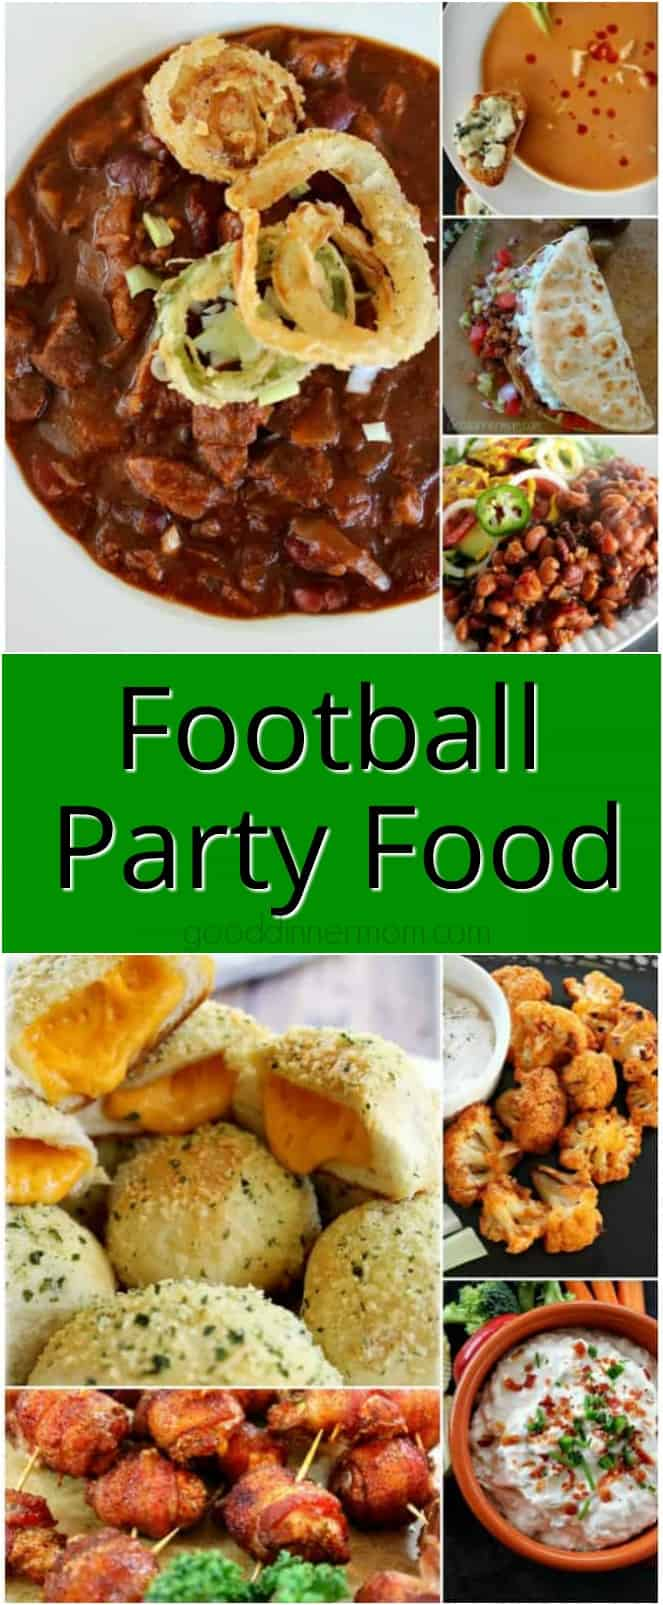 Whether you're serving up appetizers, the main meal or both at your next Football party, try some of my best Football food recipes that are sure to please. #easyrecipes #footballfood